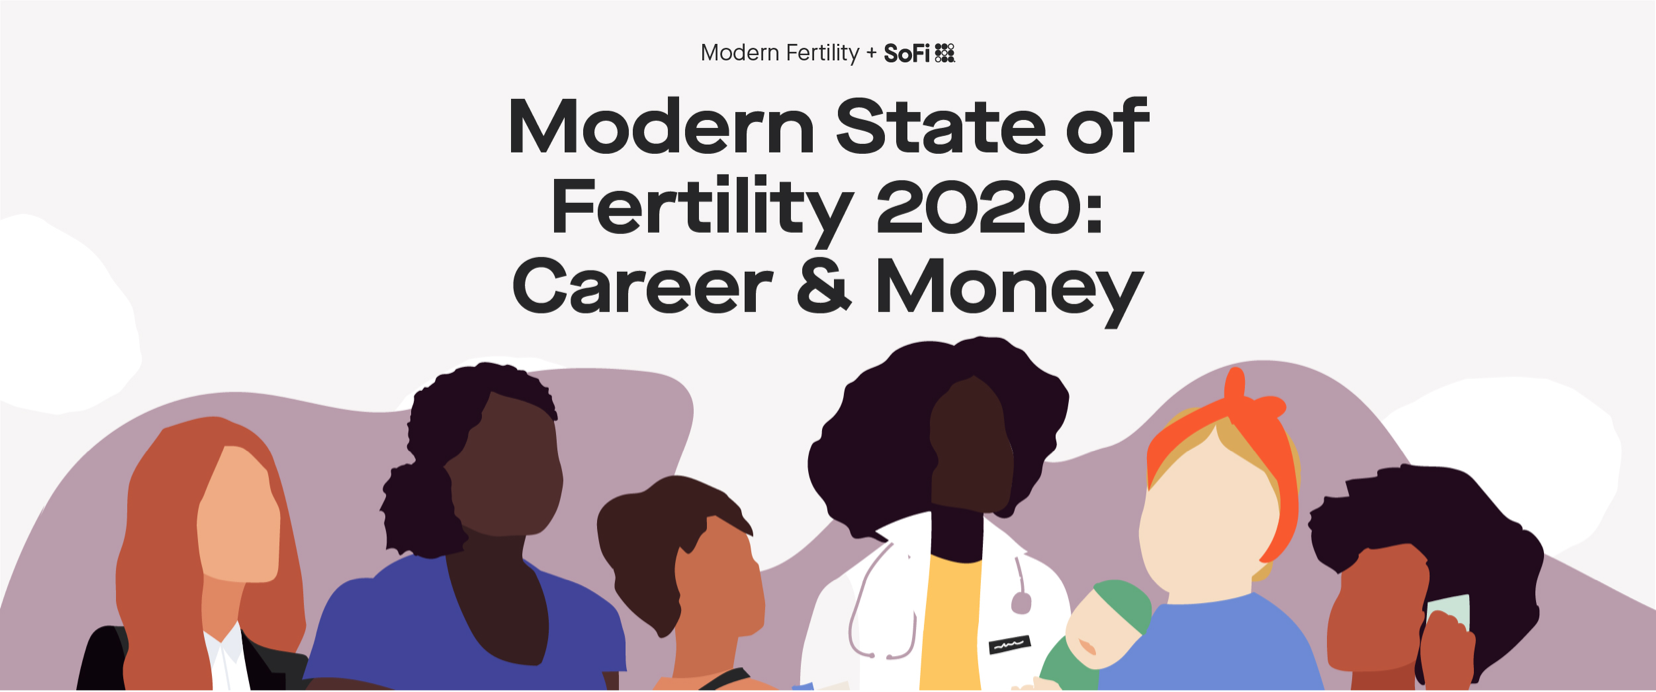 Modern State of Fertility